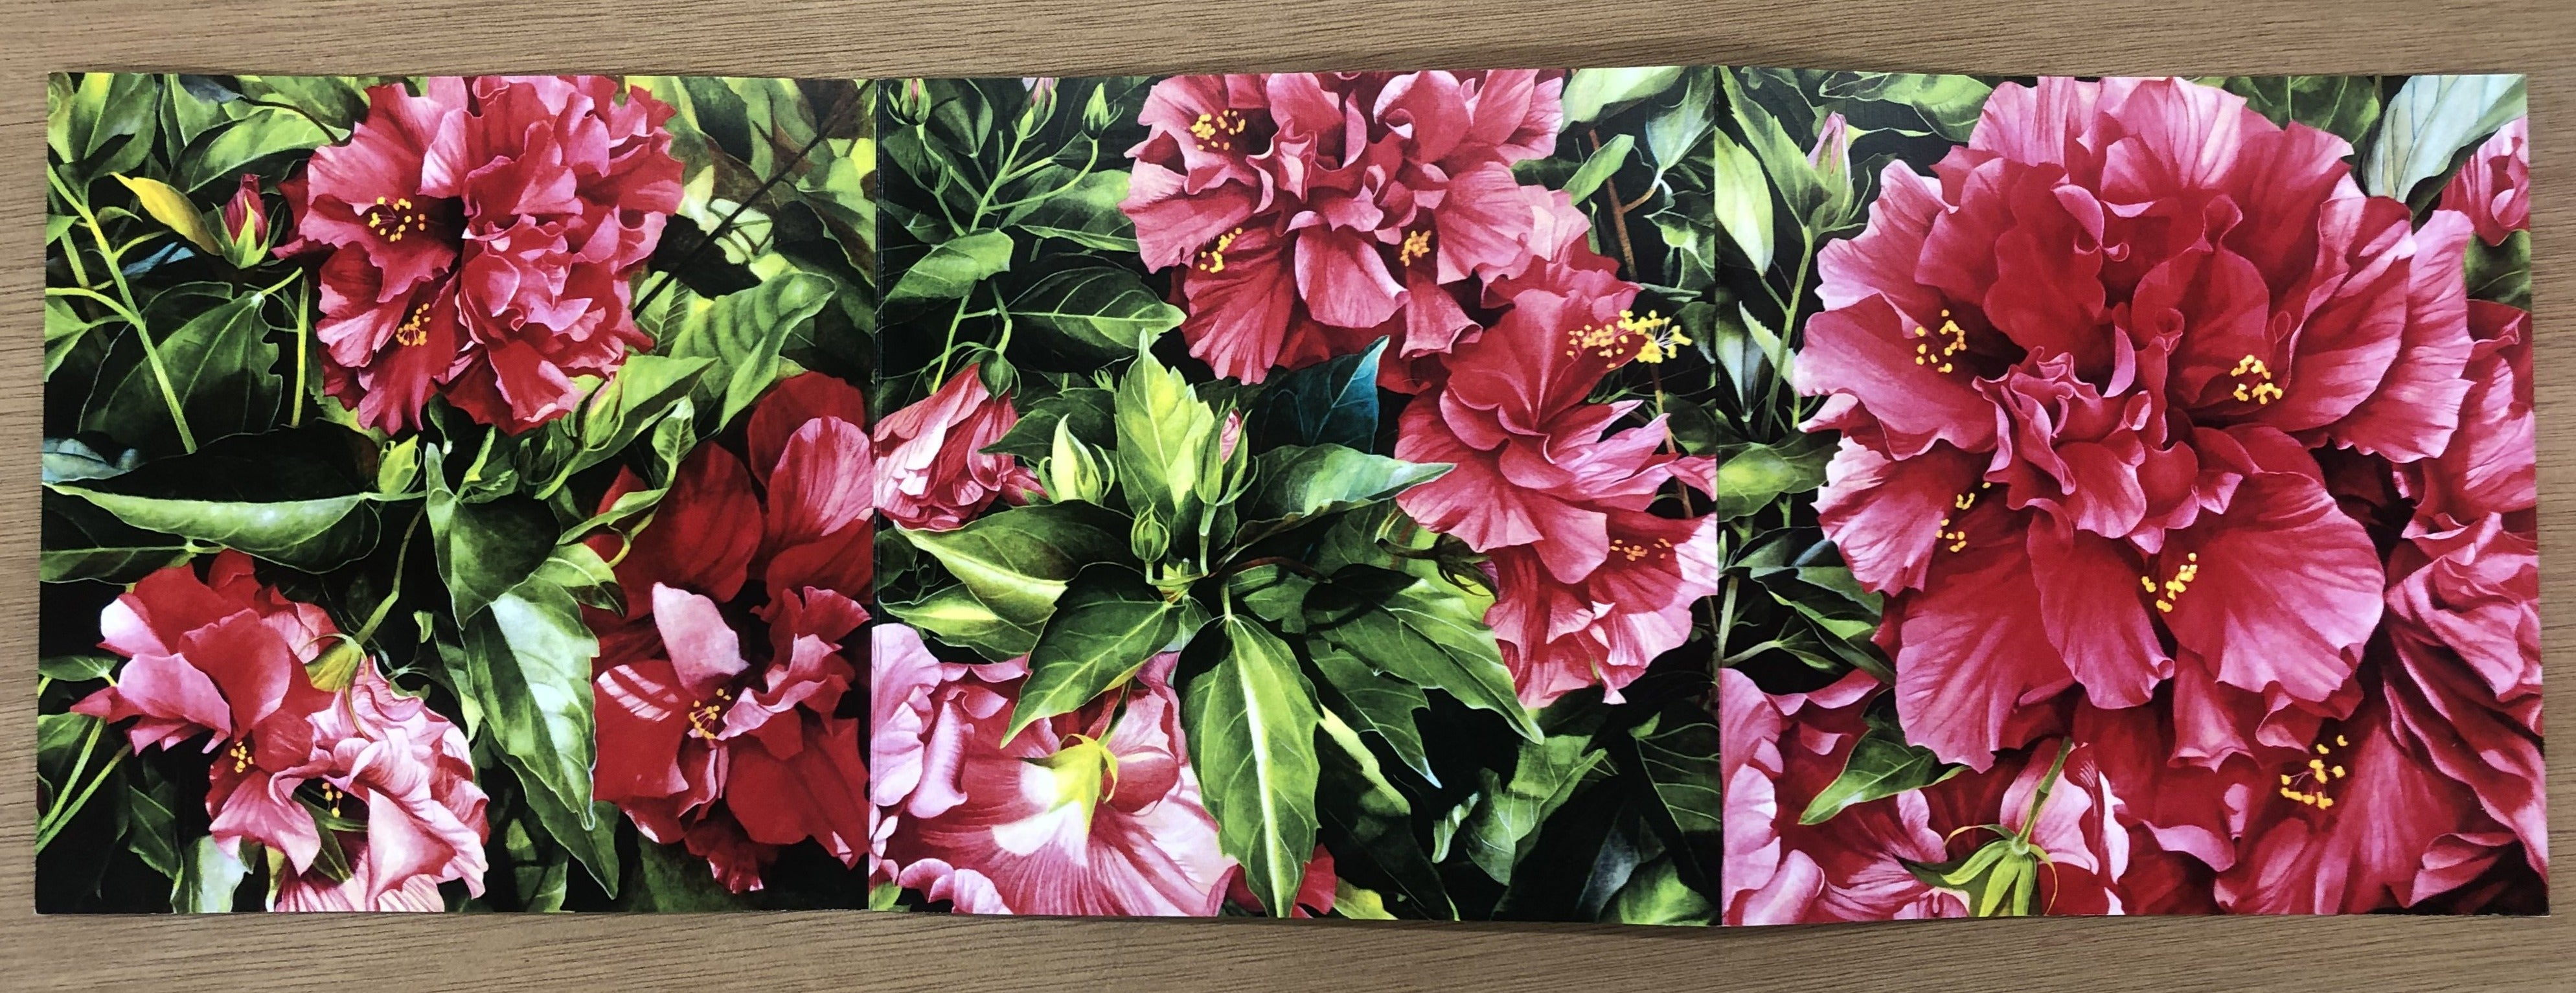 Hibiscus Triptych - Art Print & Card by Sylvia Marsters